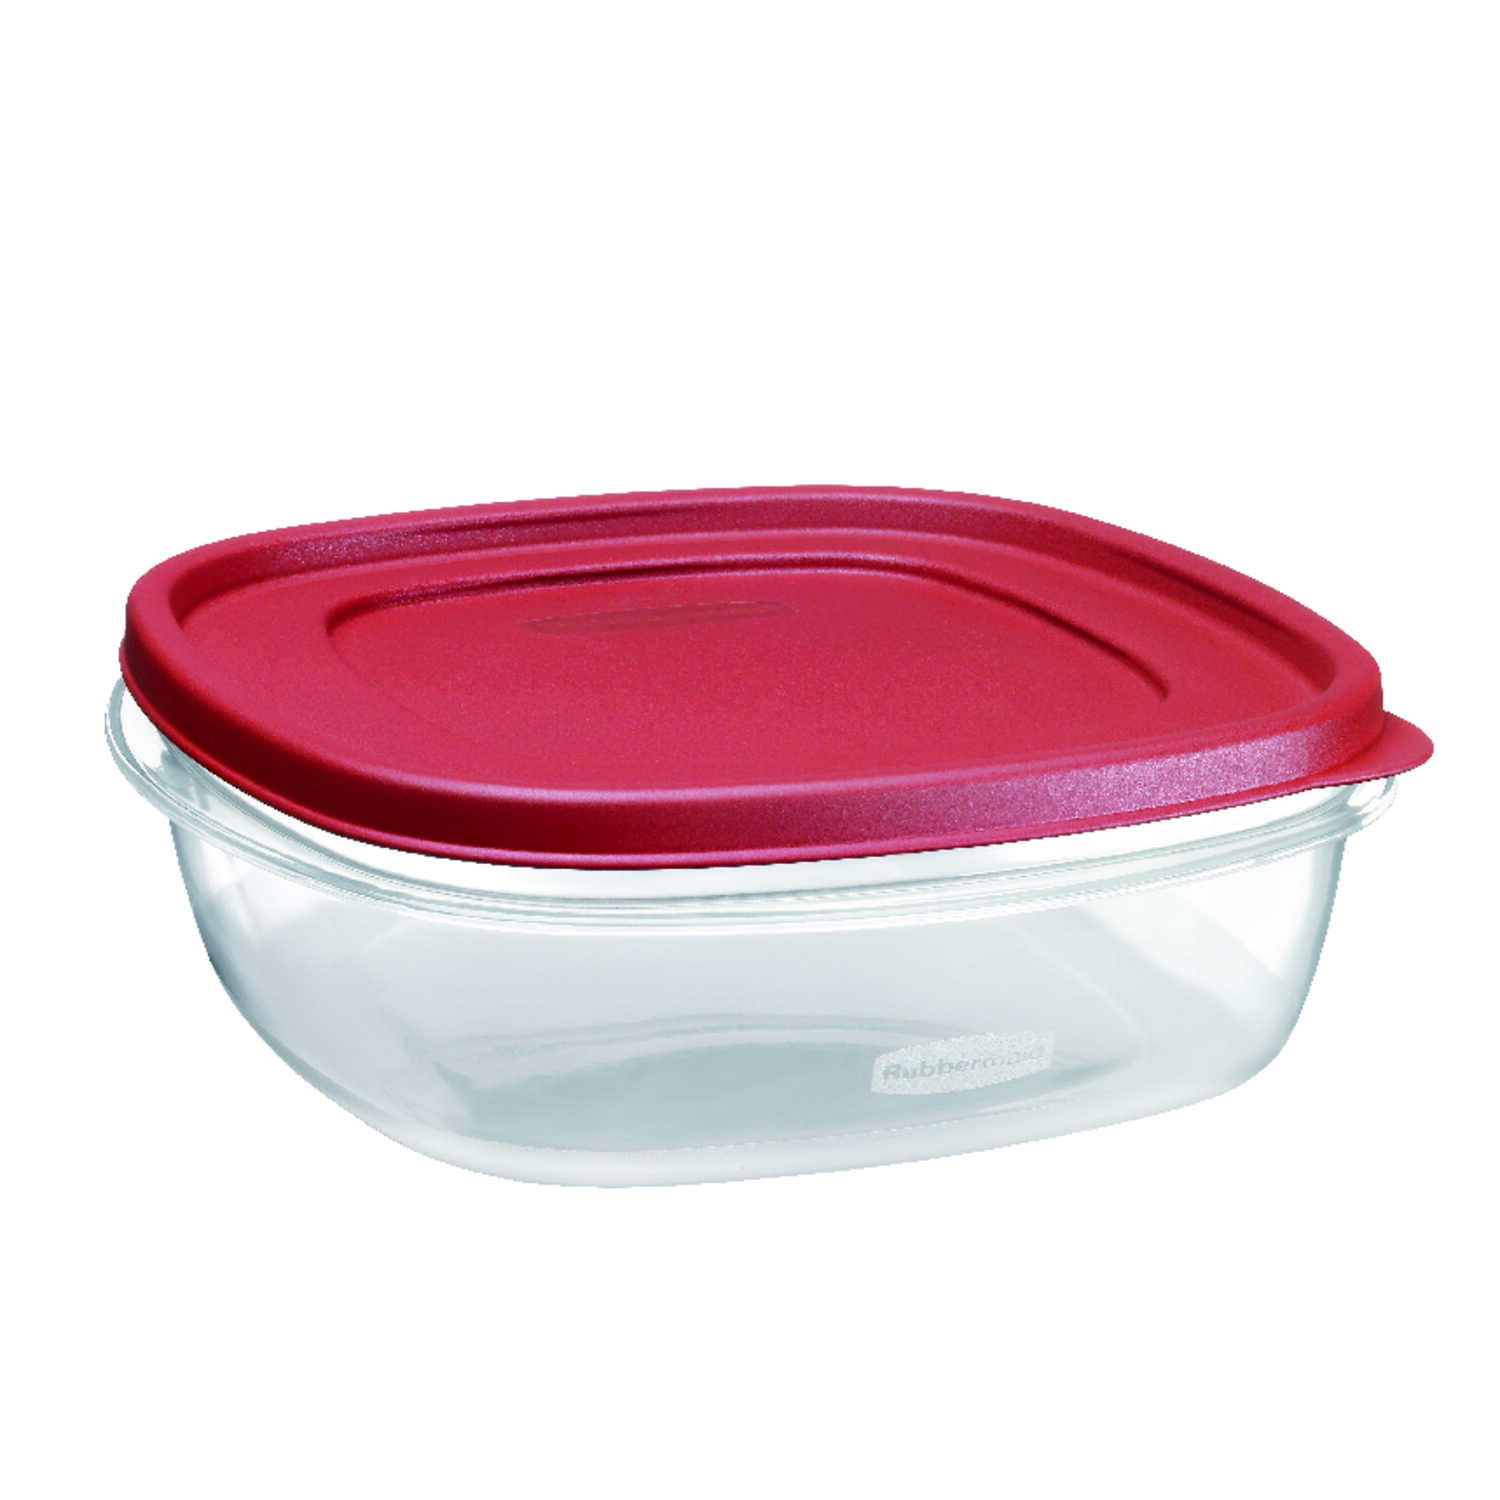 Rubbermaid  9 cups Food Storage Container